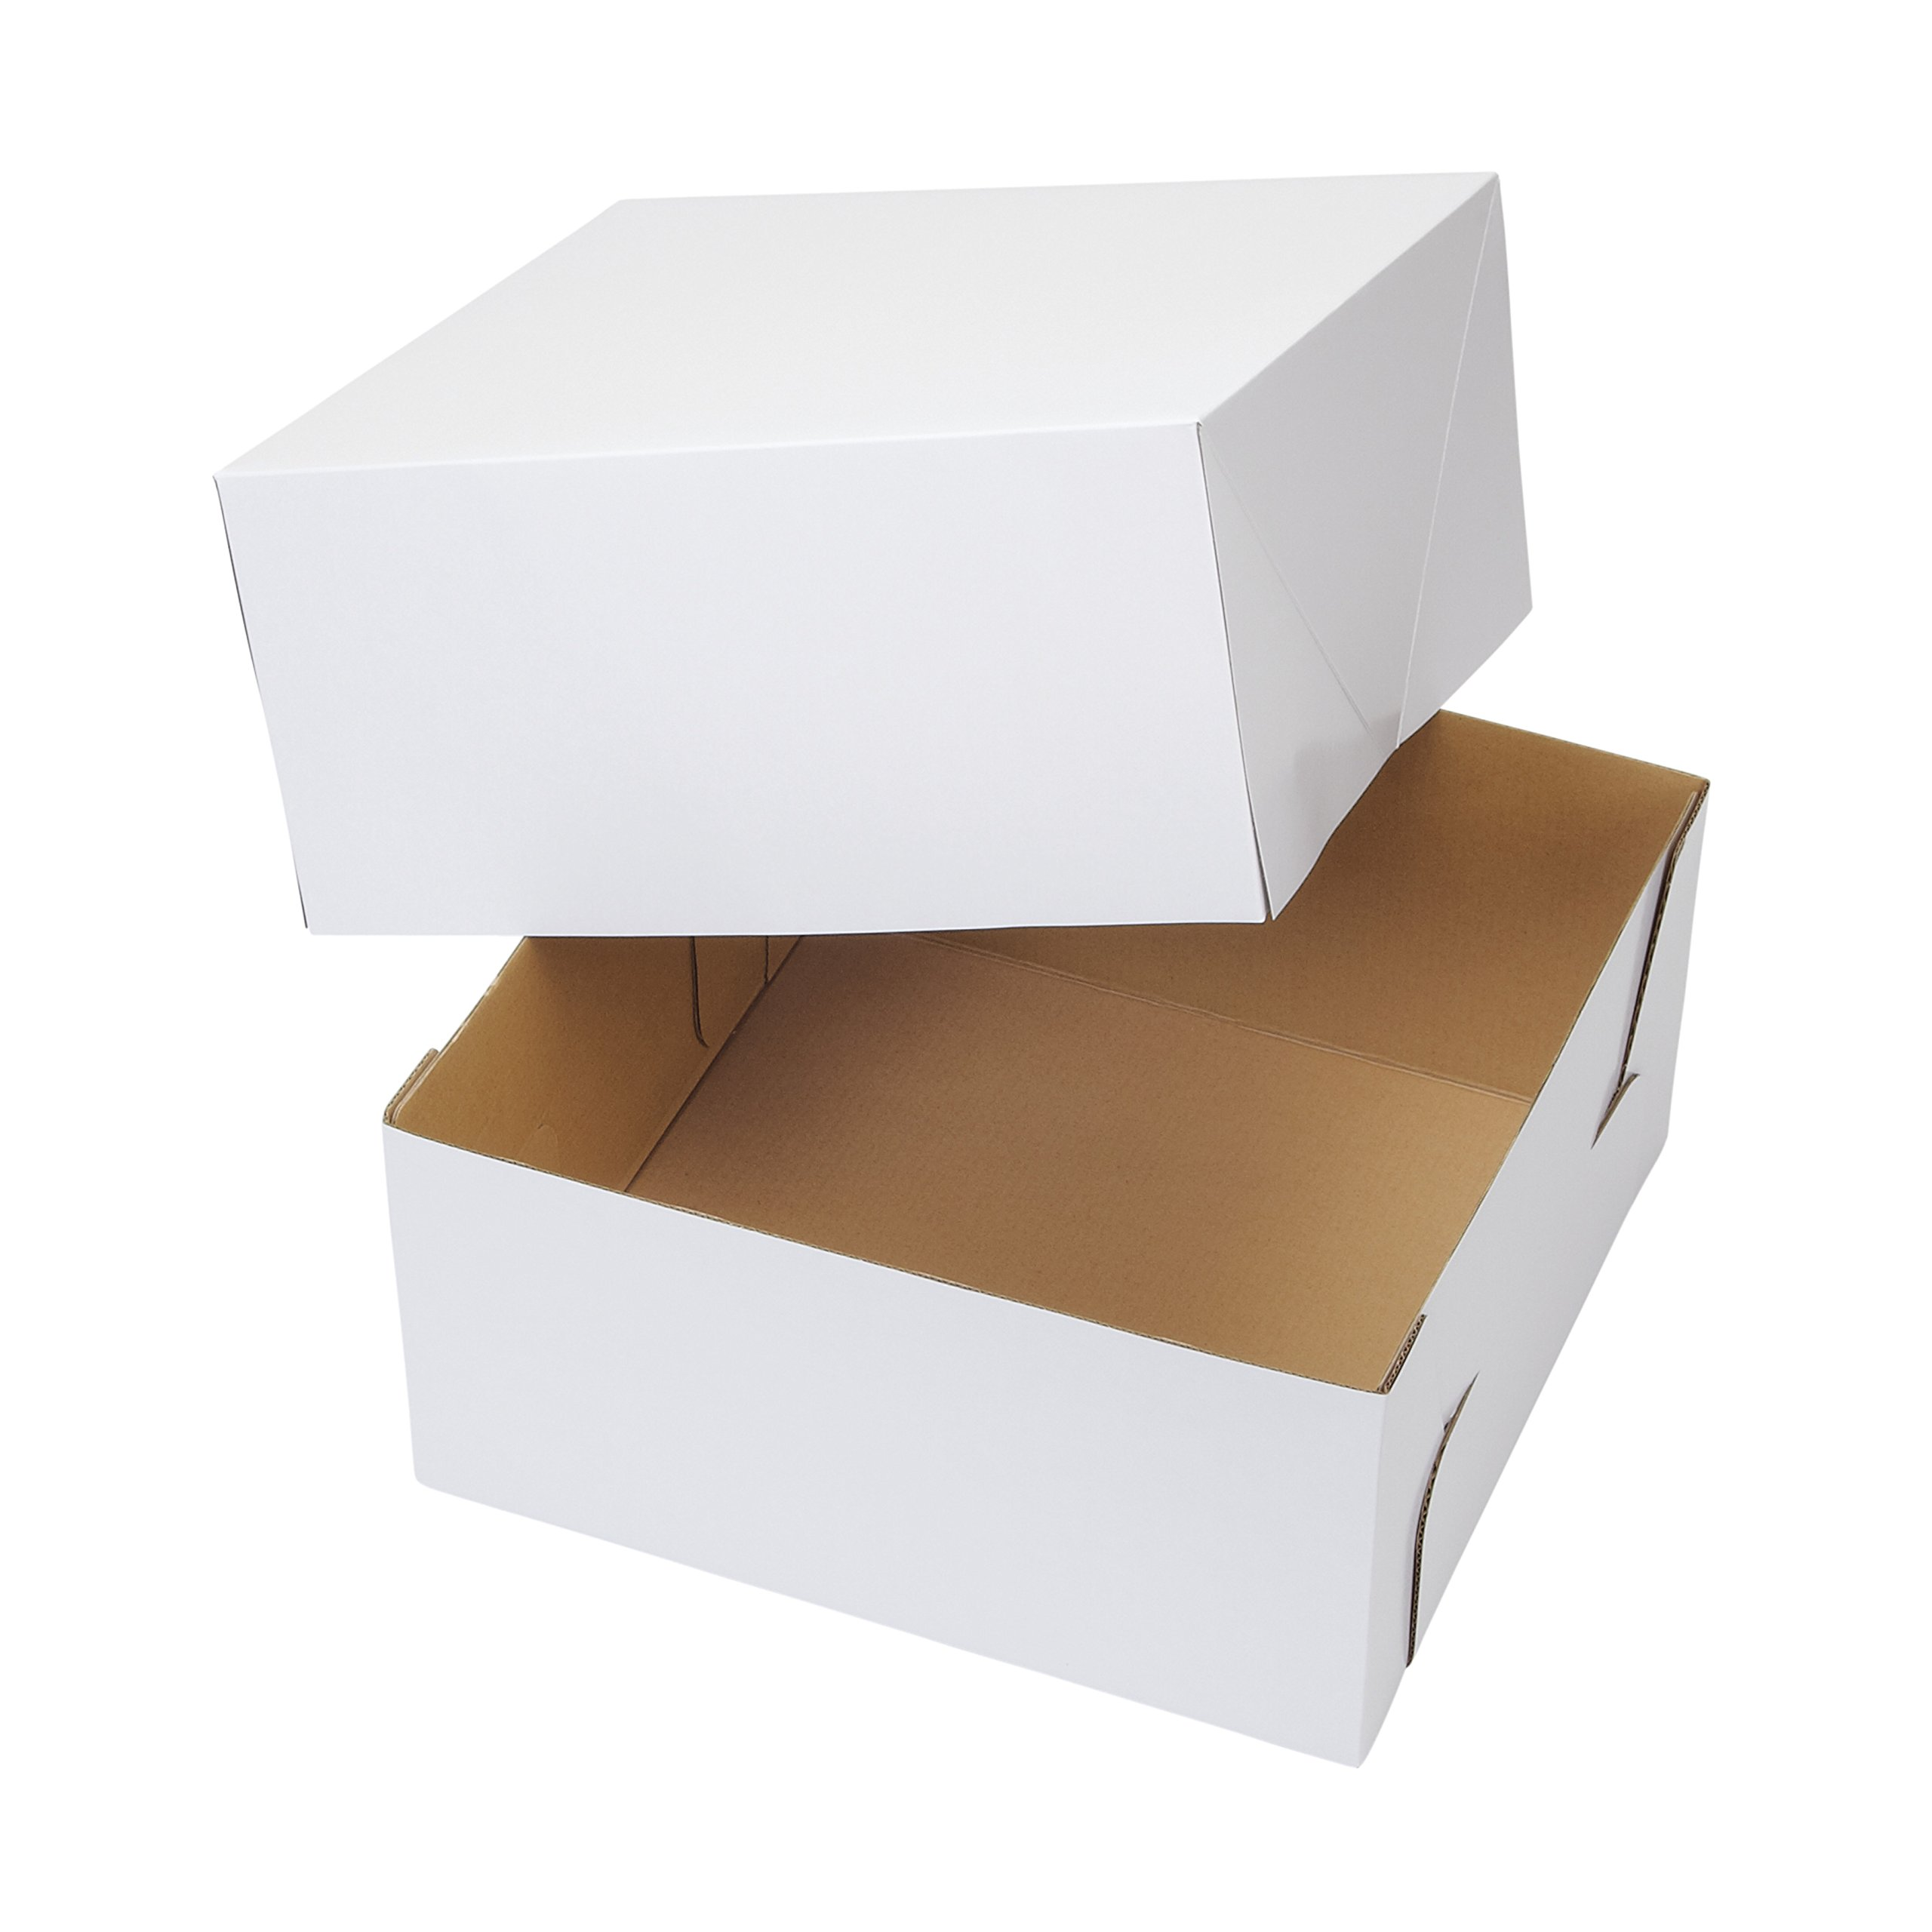 Wilton 12-Inch White Cake Box (Pack of 2) by Wilton